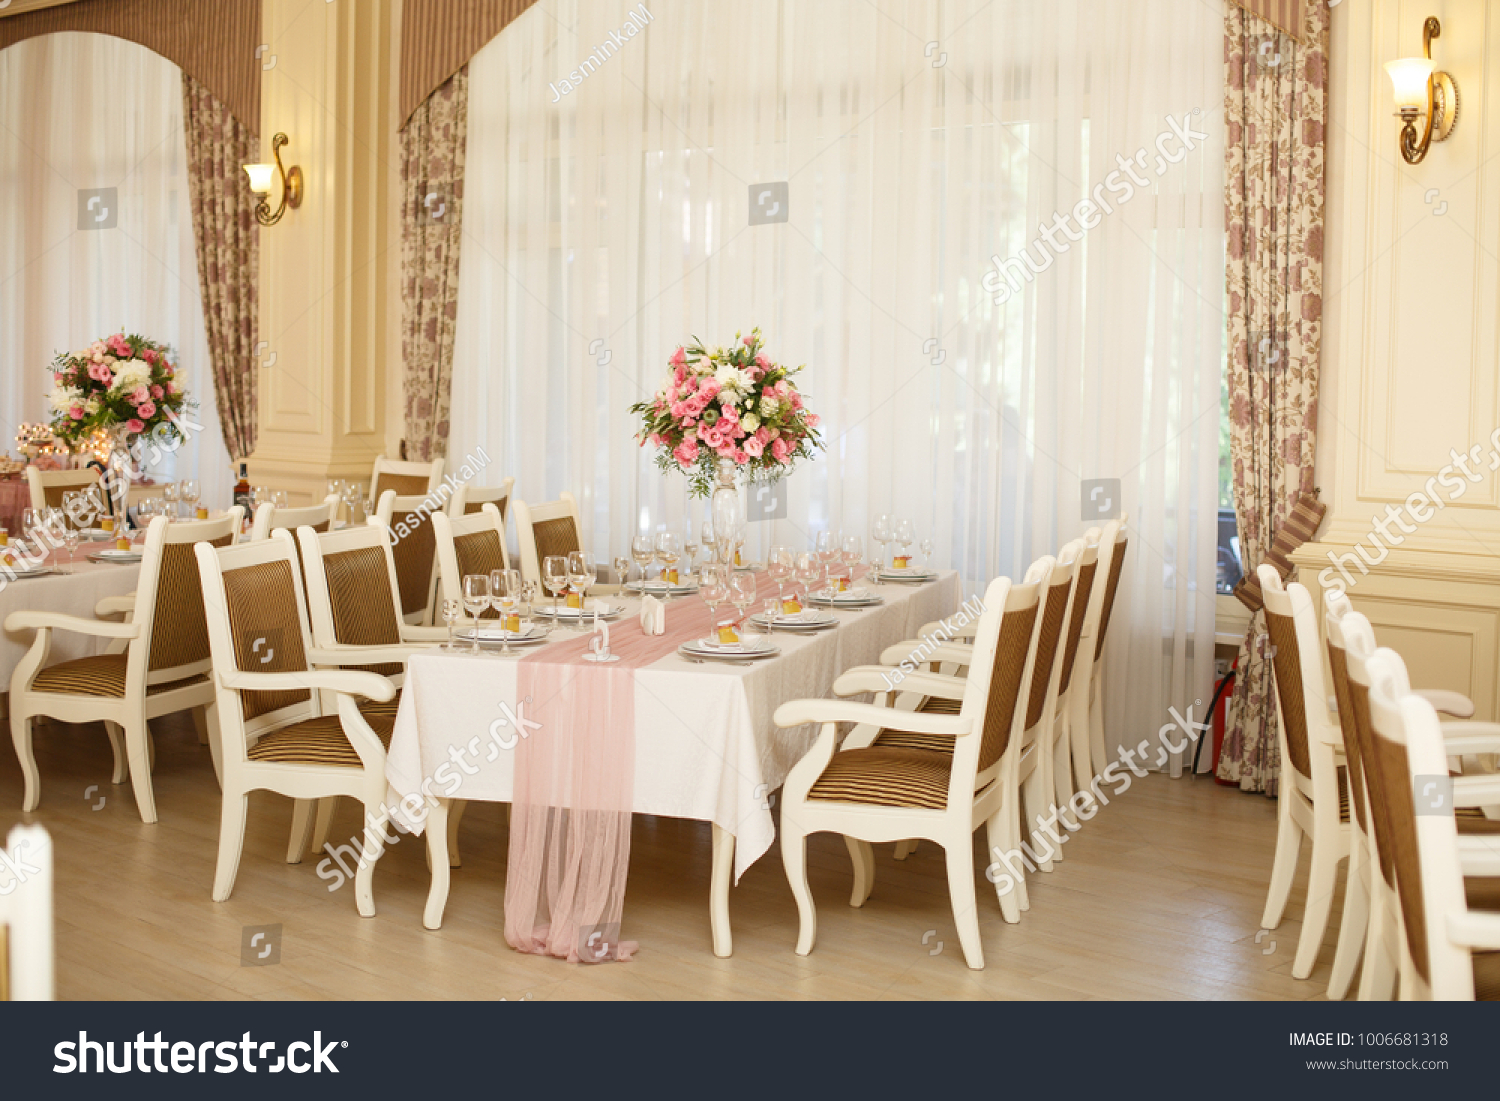 Beautiful Setting Of Wedding Party In Restaurant Tables And Chairs